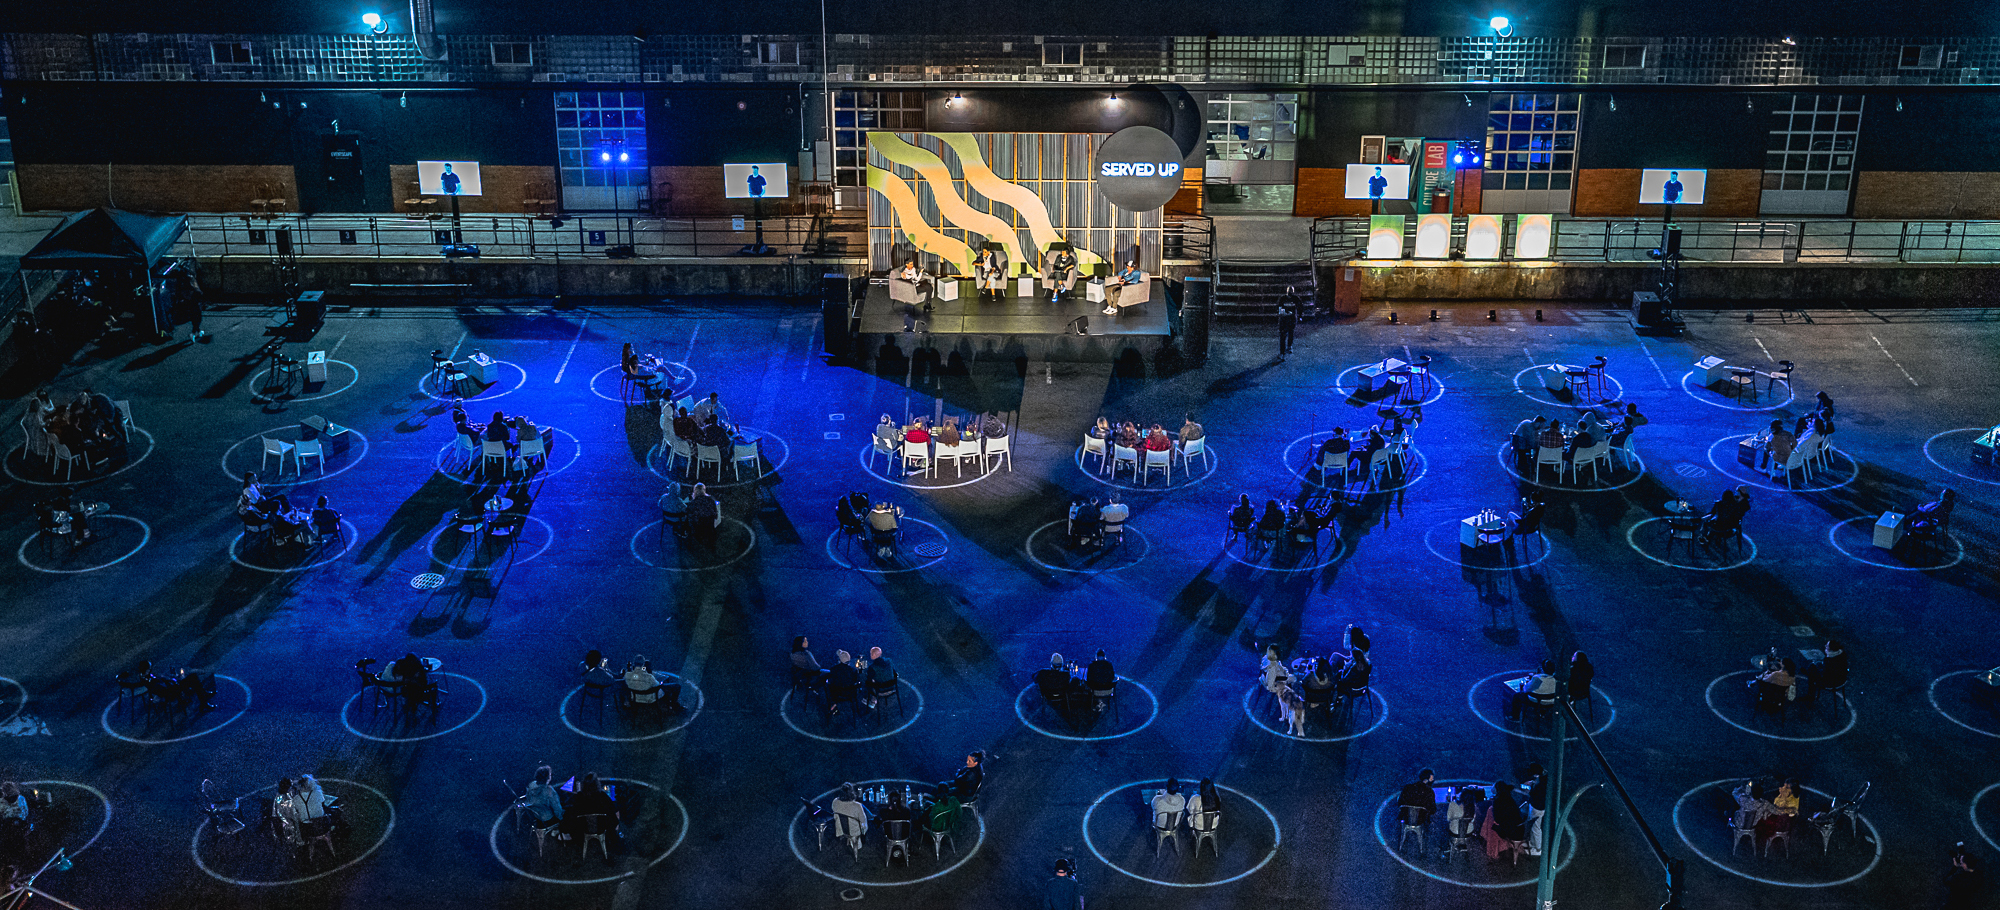 social distancing, new events industry rules